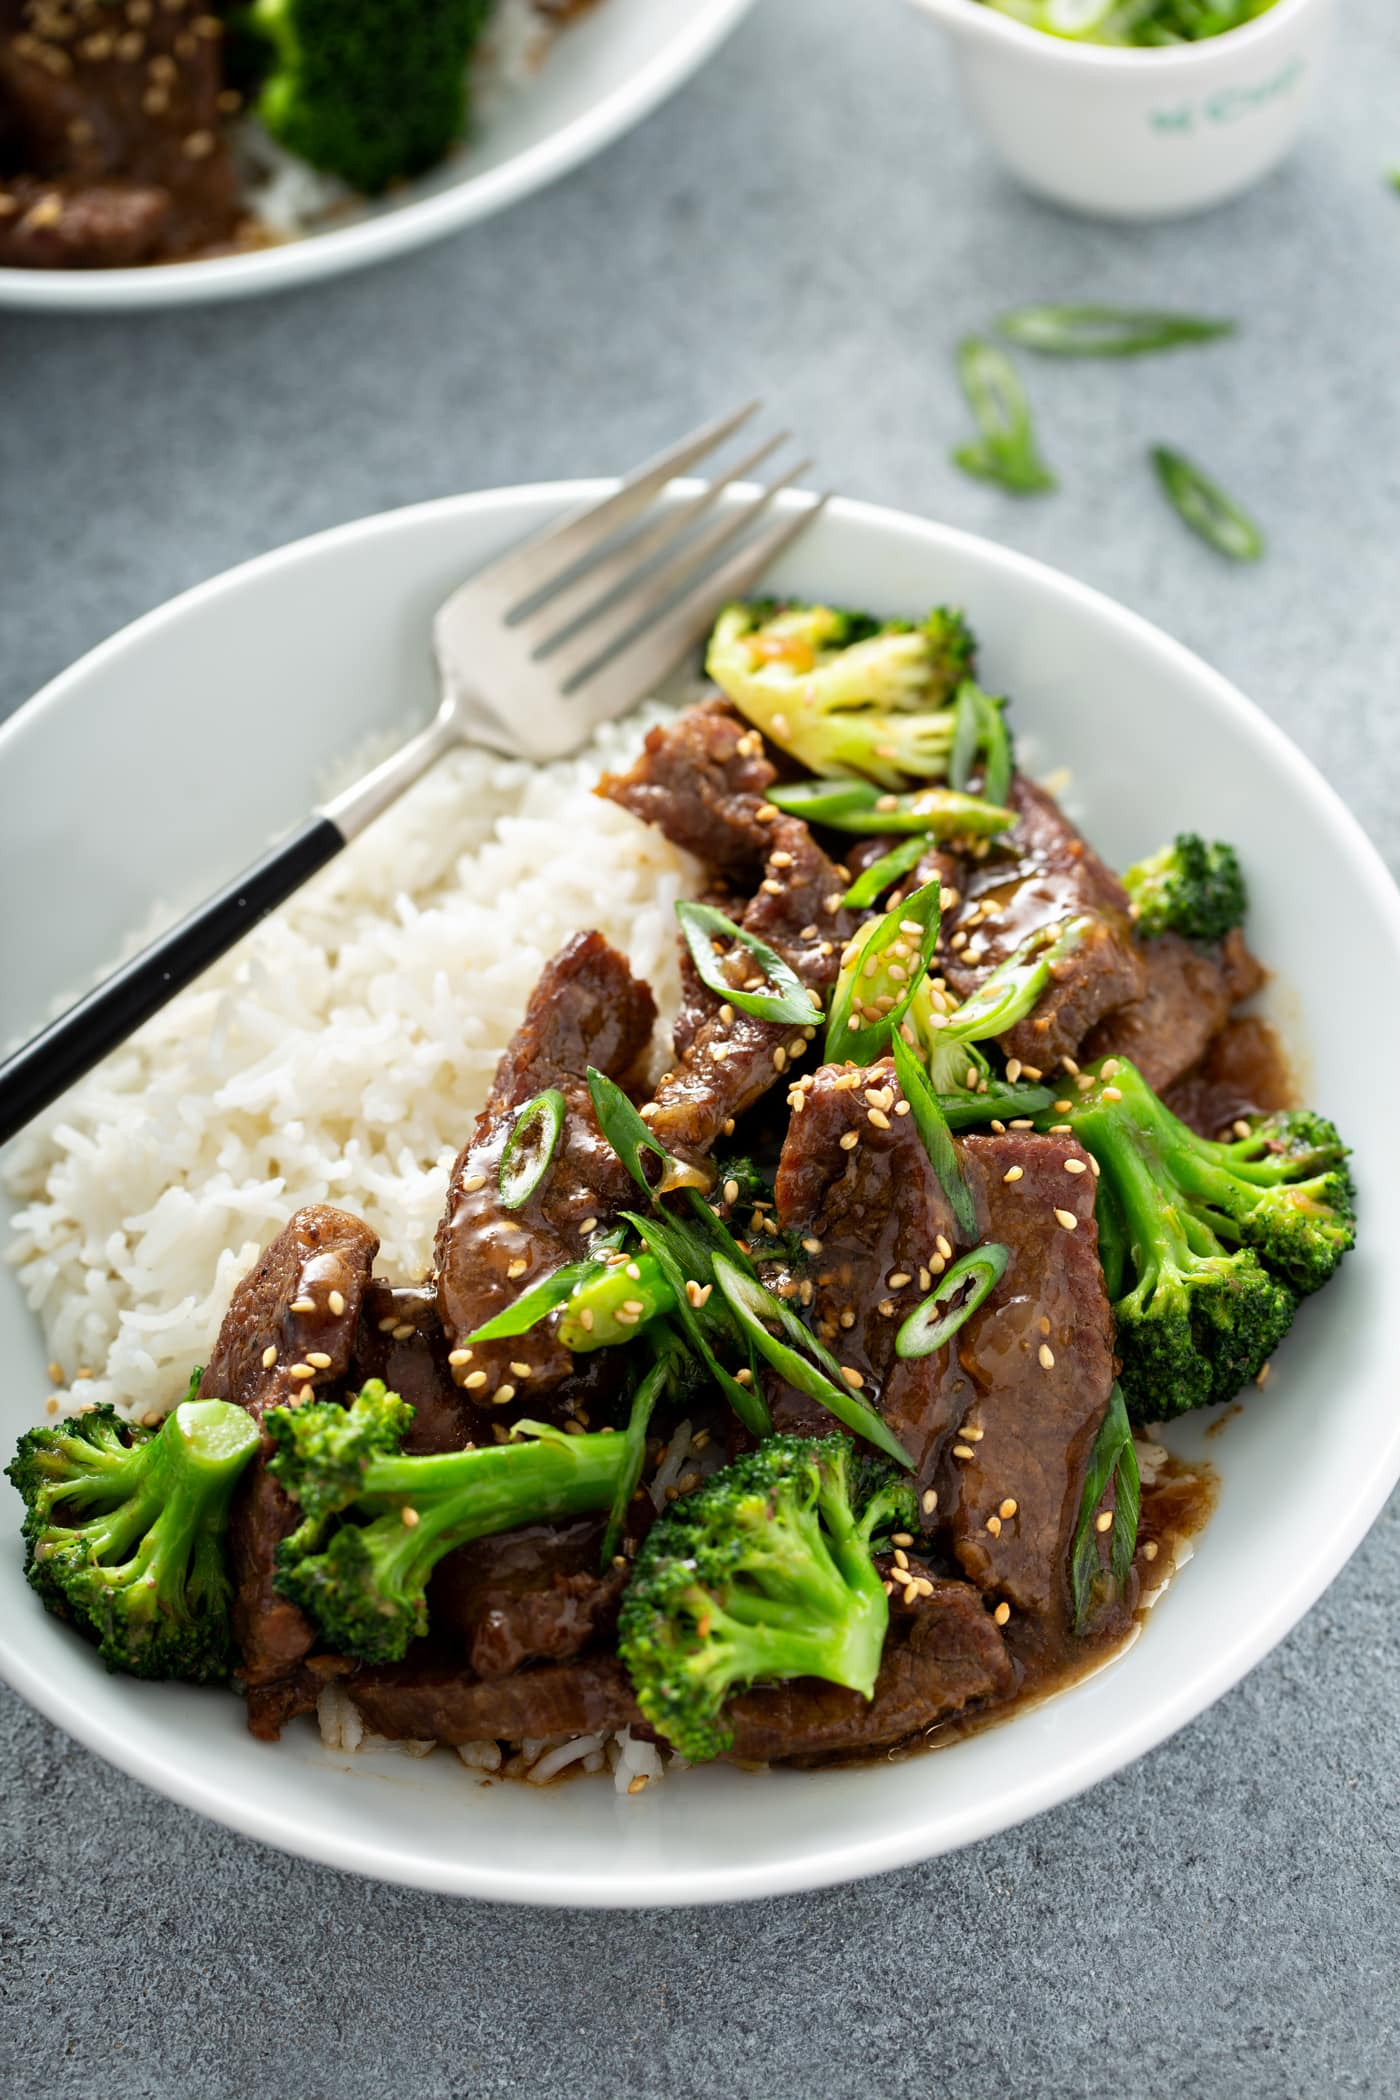 A photo of beef and broccoli on a white plate next to a serving of white rice and garnished with sliced green onions and toasted sesame seeds